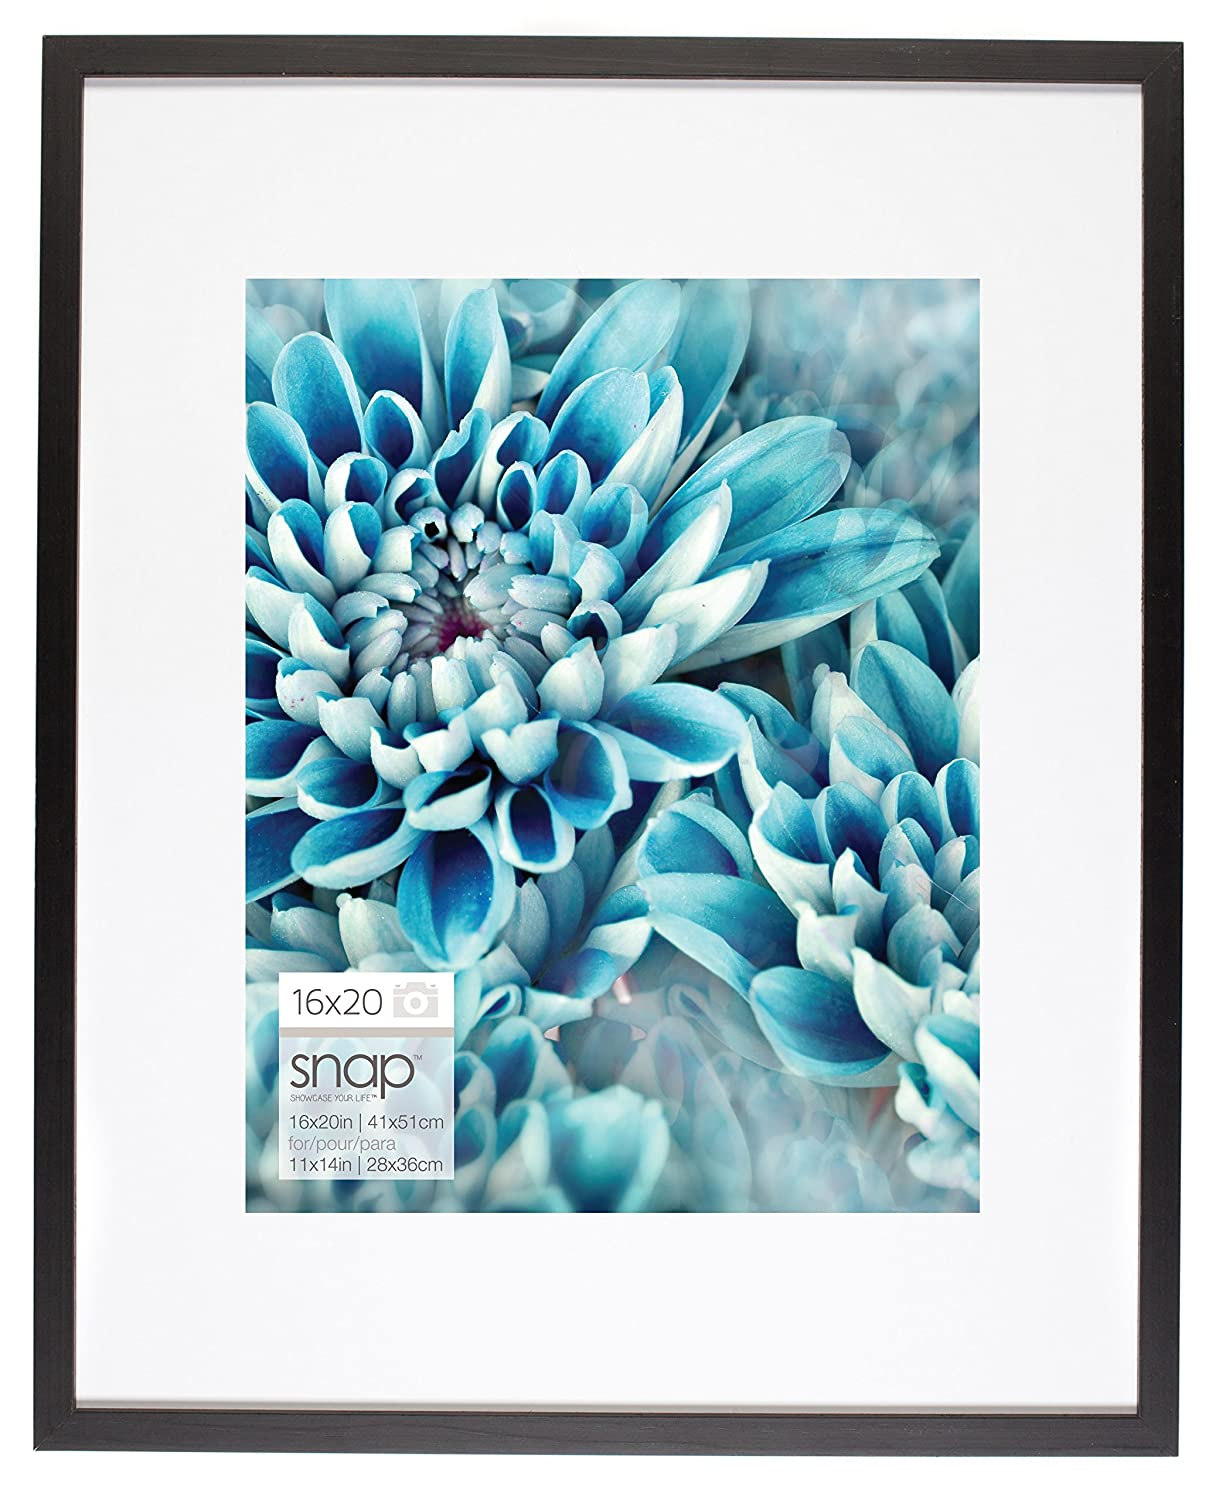 to photo free inch whitewash x overstock alexandria garden frame matted shipping today mat product home